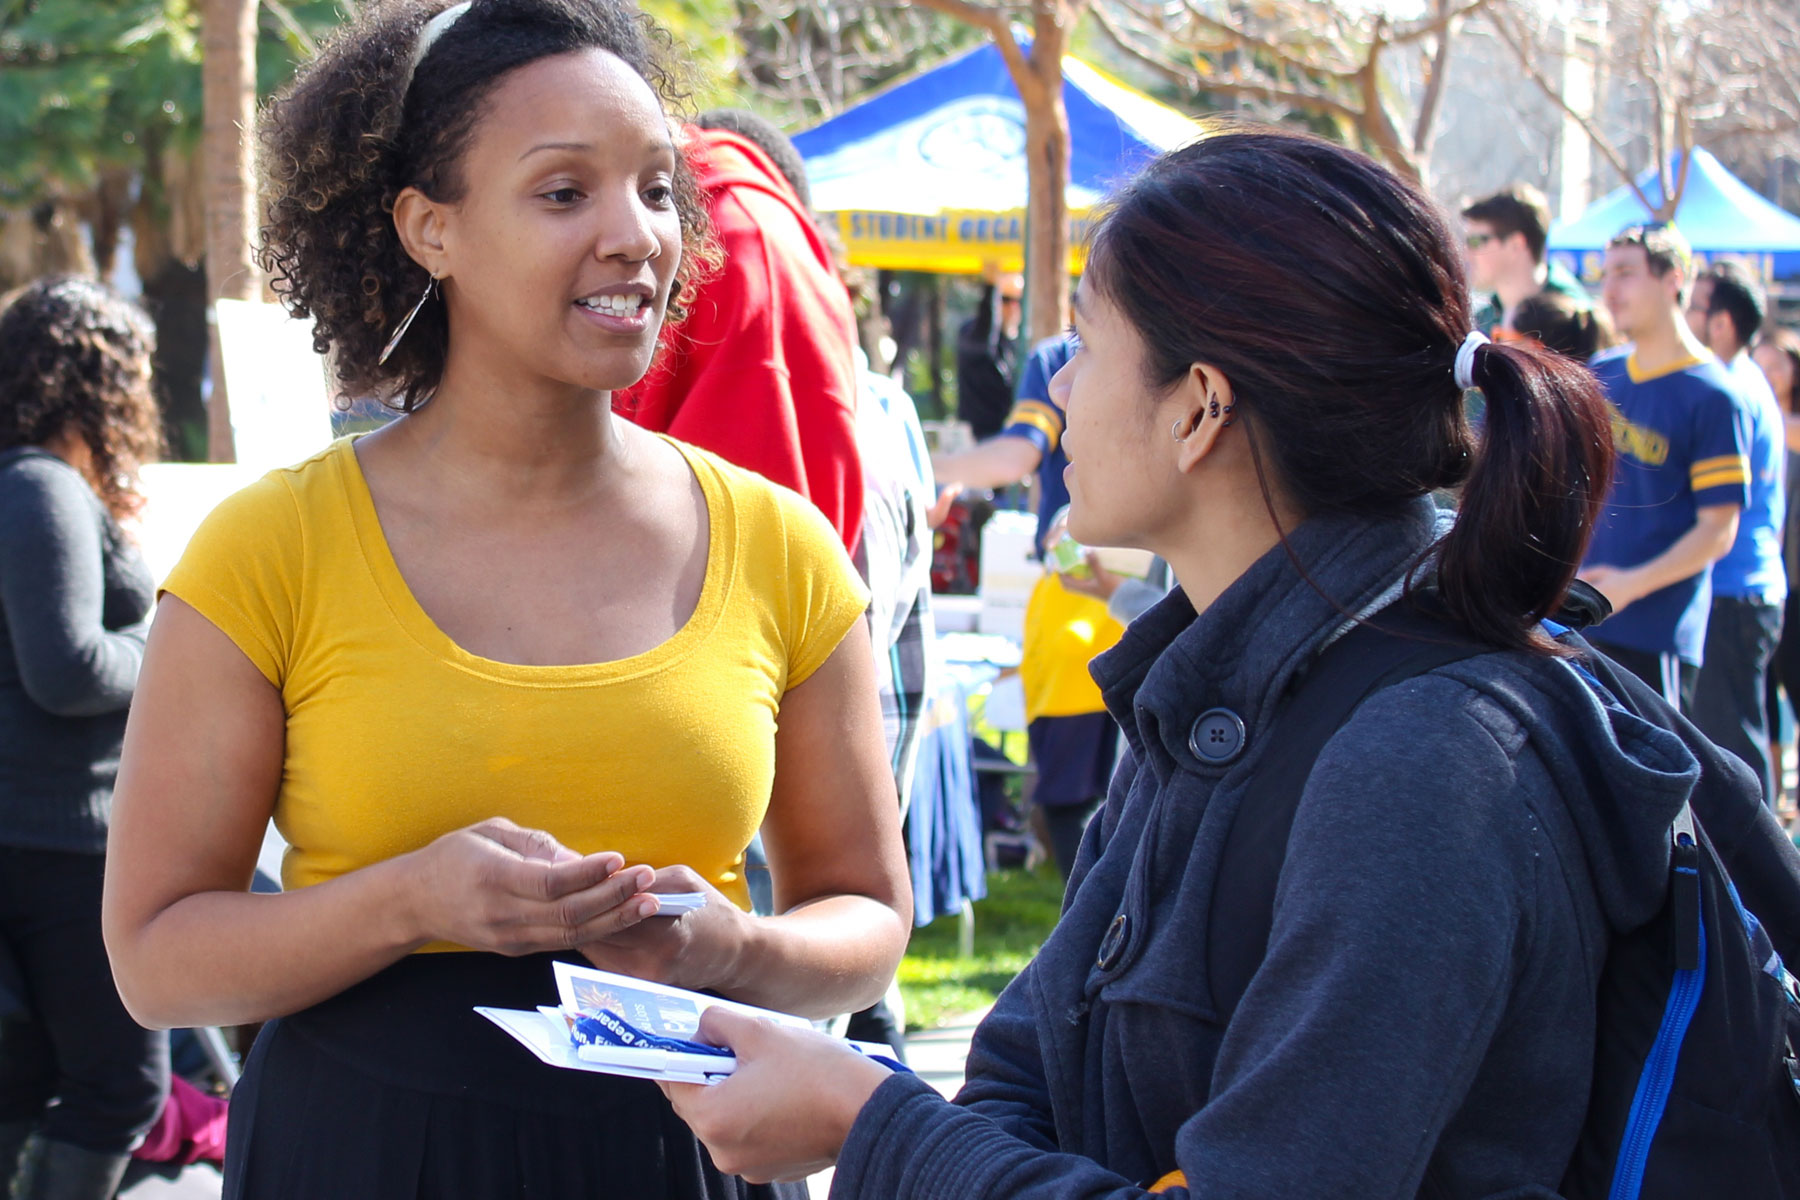 SJSU student receiving information on sexual assault and intimate violence.